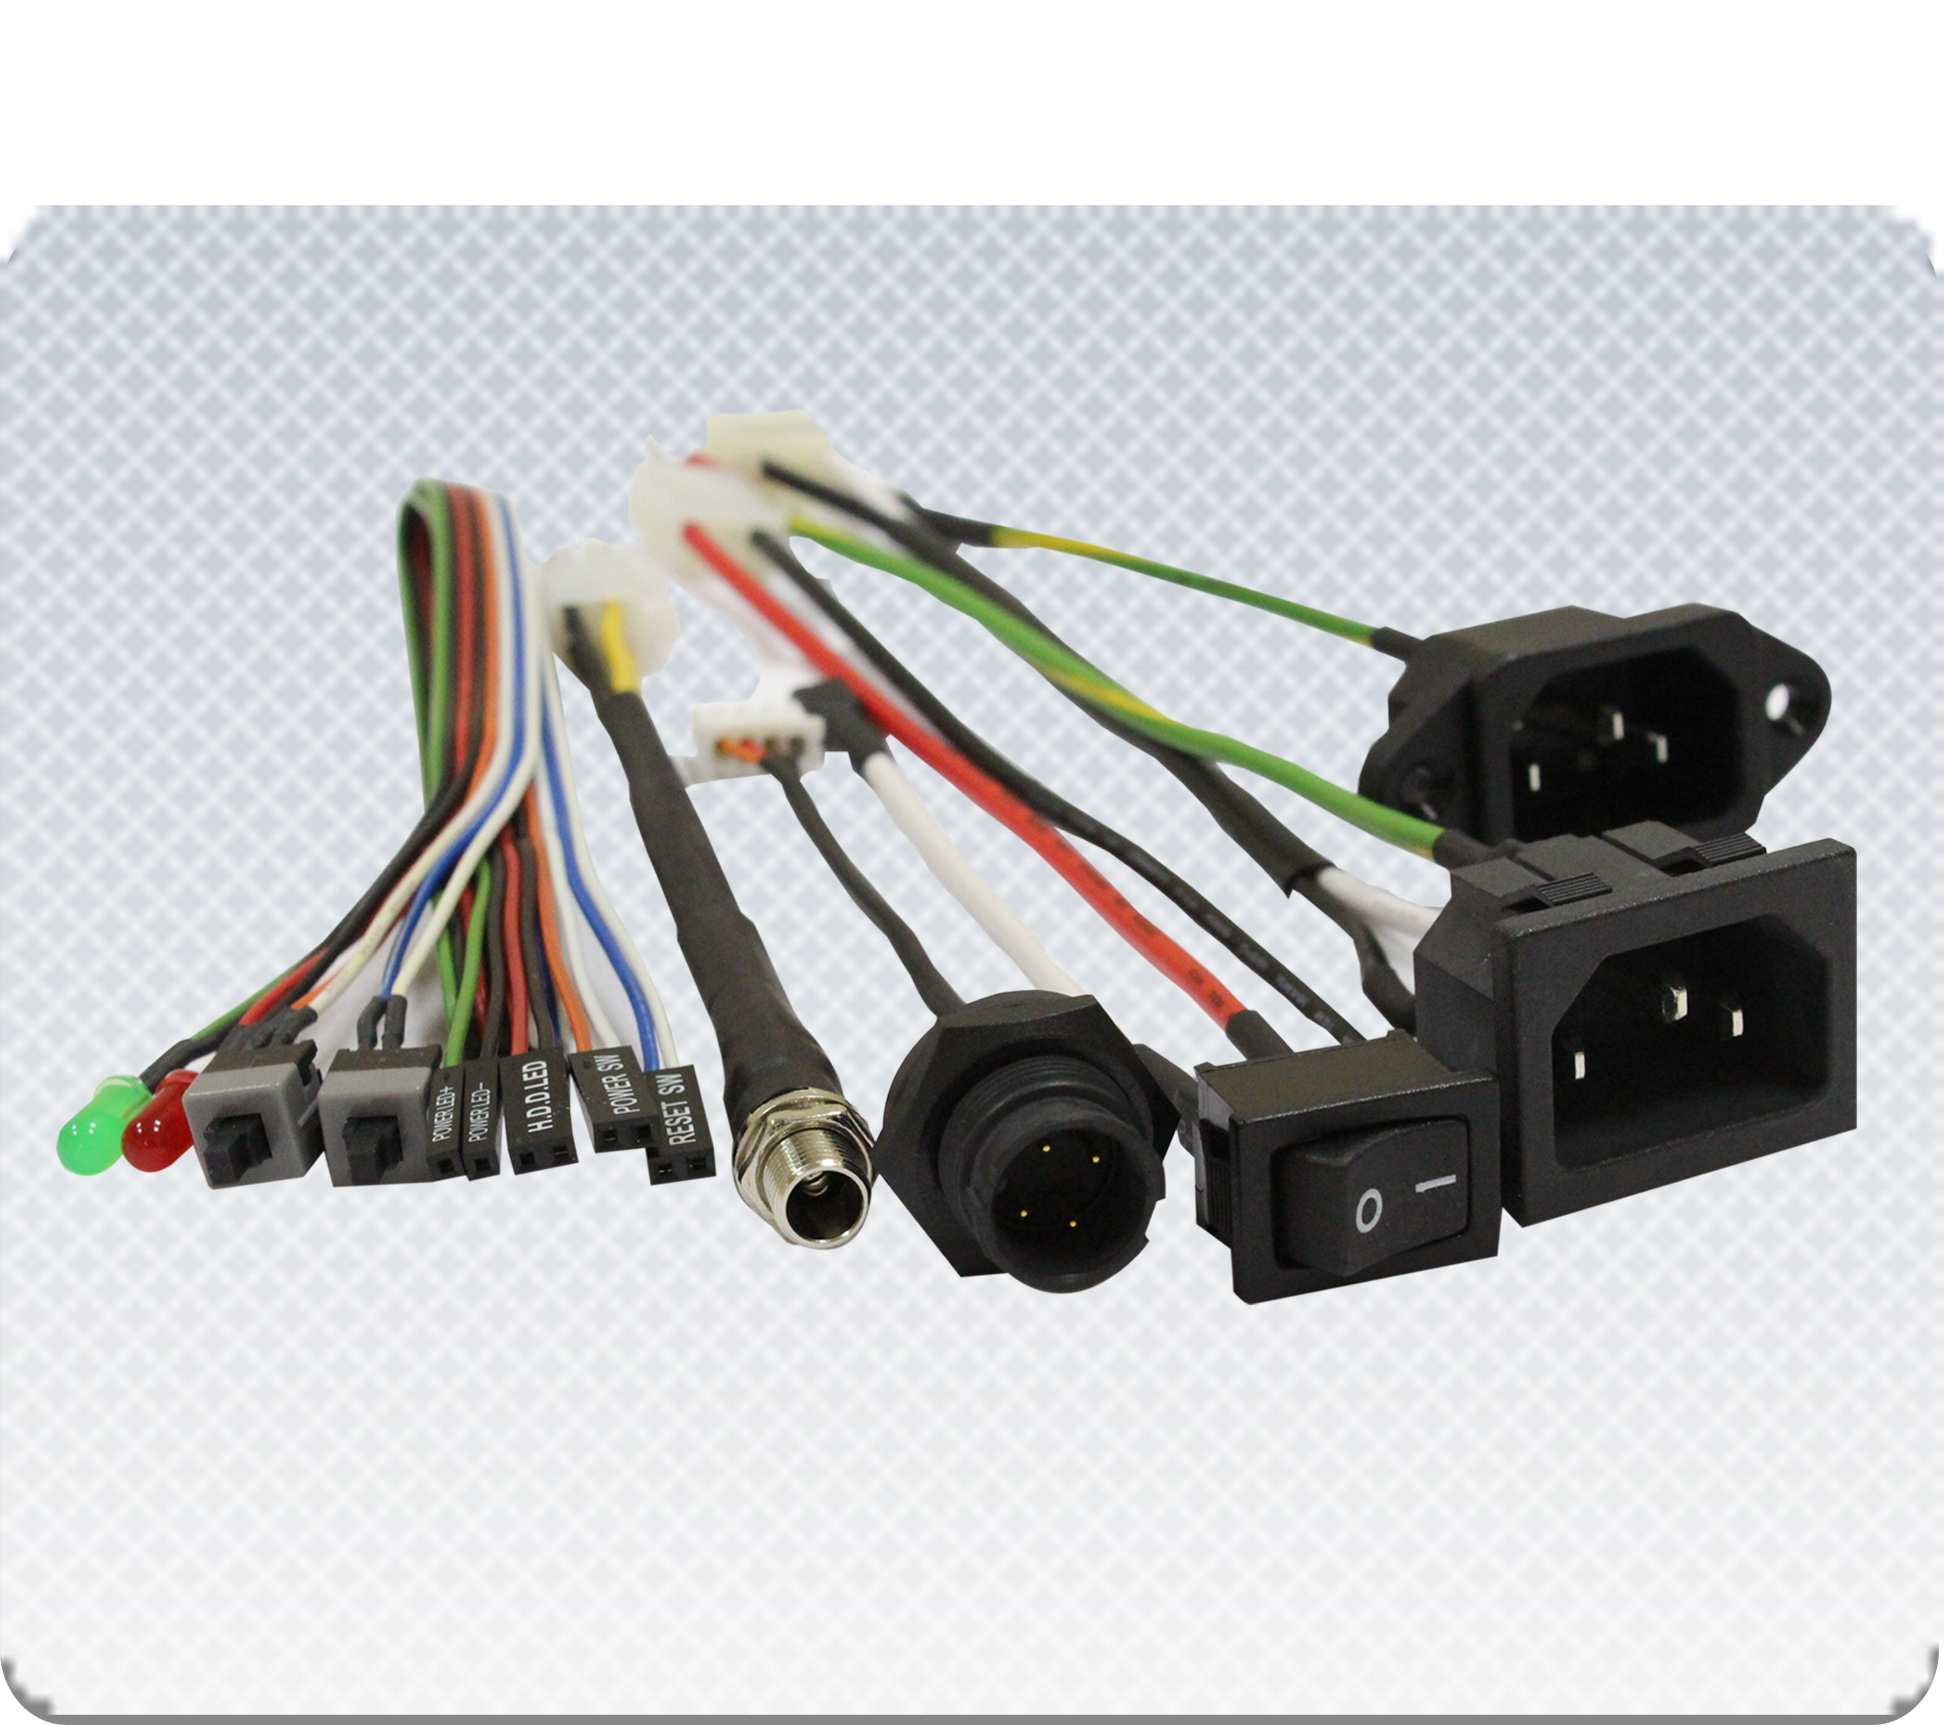 Wiring Harness(1)(3) wire harness supplier, wire harness manufacturer, wire harness oem oem wire harness manufacturers at soozxer.org